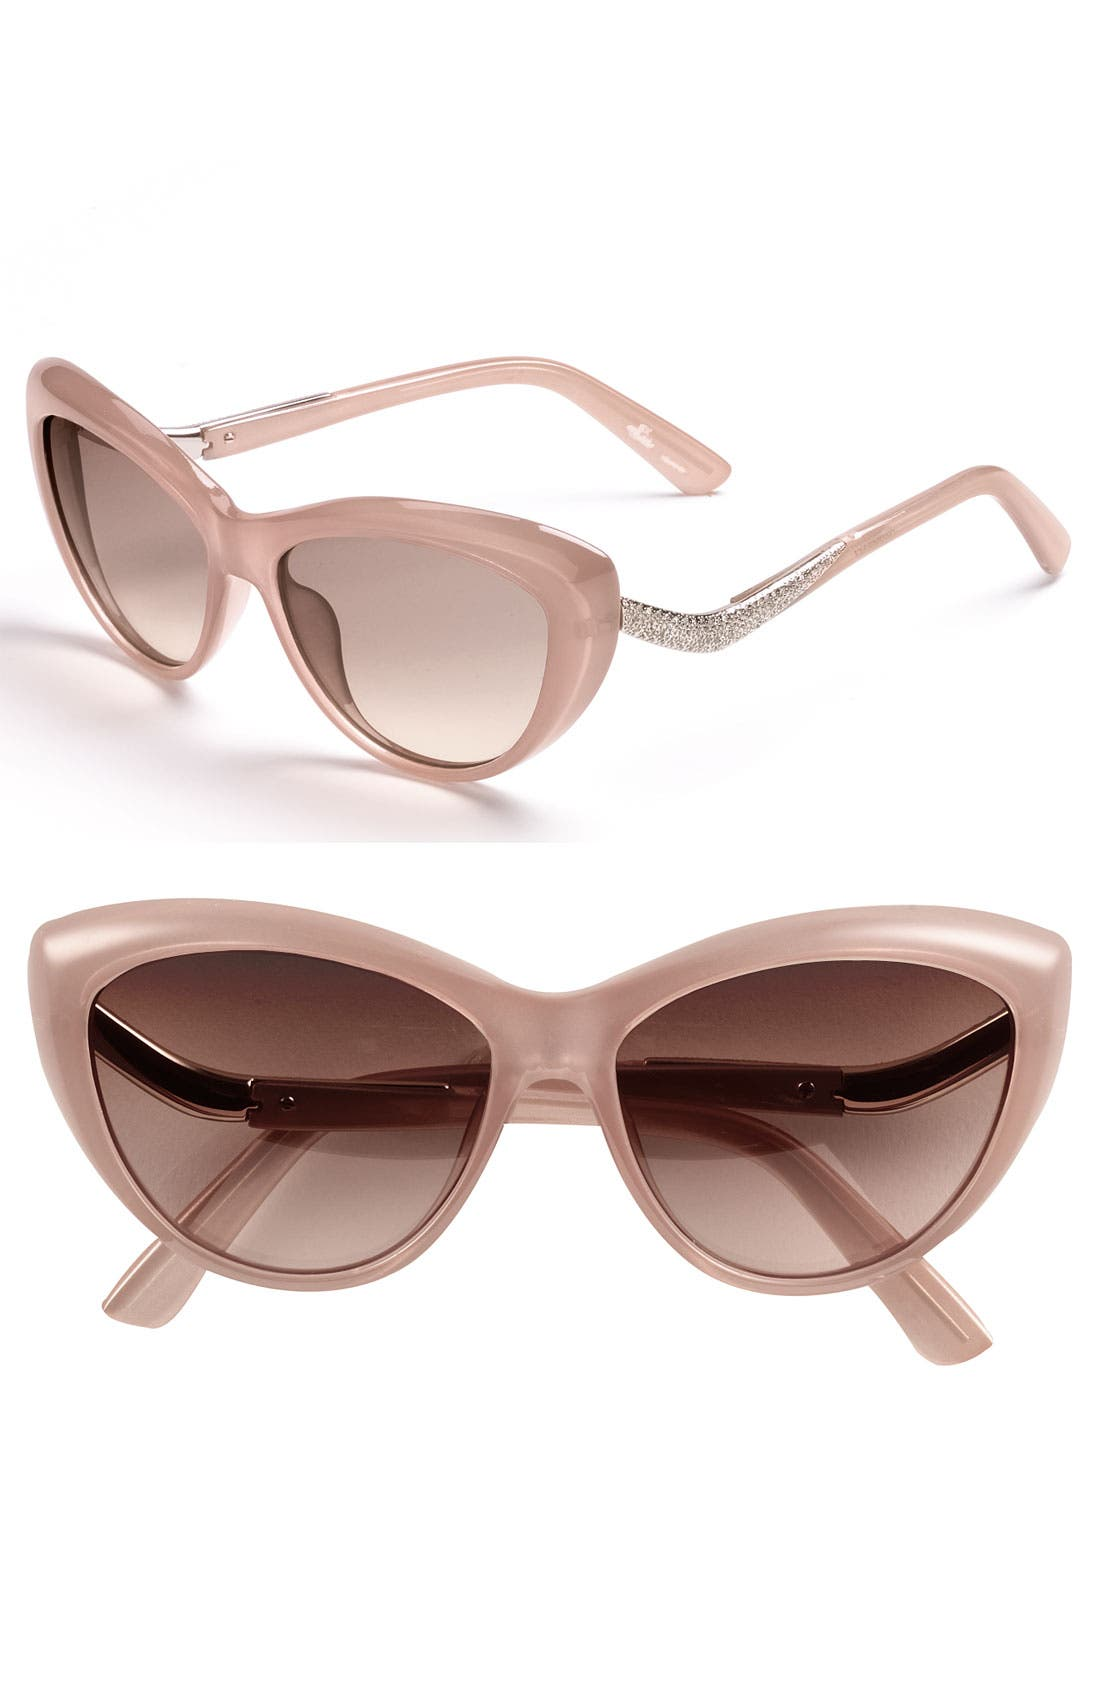 Main Image - Valentino 55mm Cat Eye Sunglasses